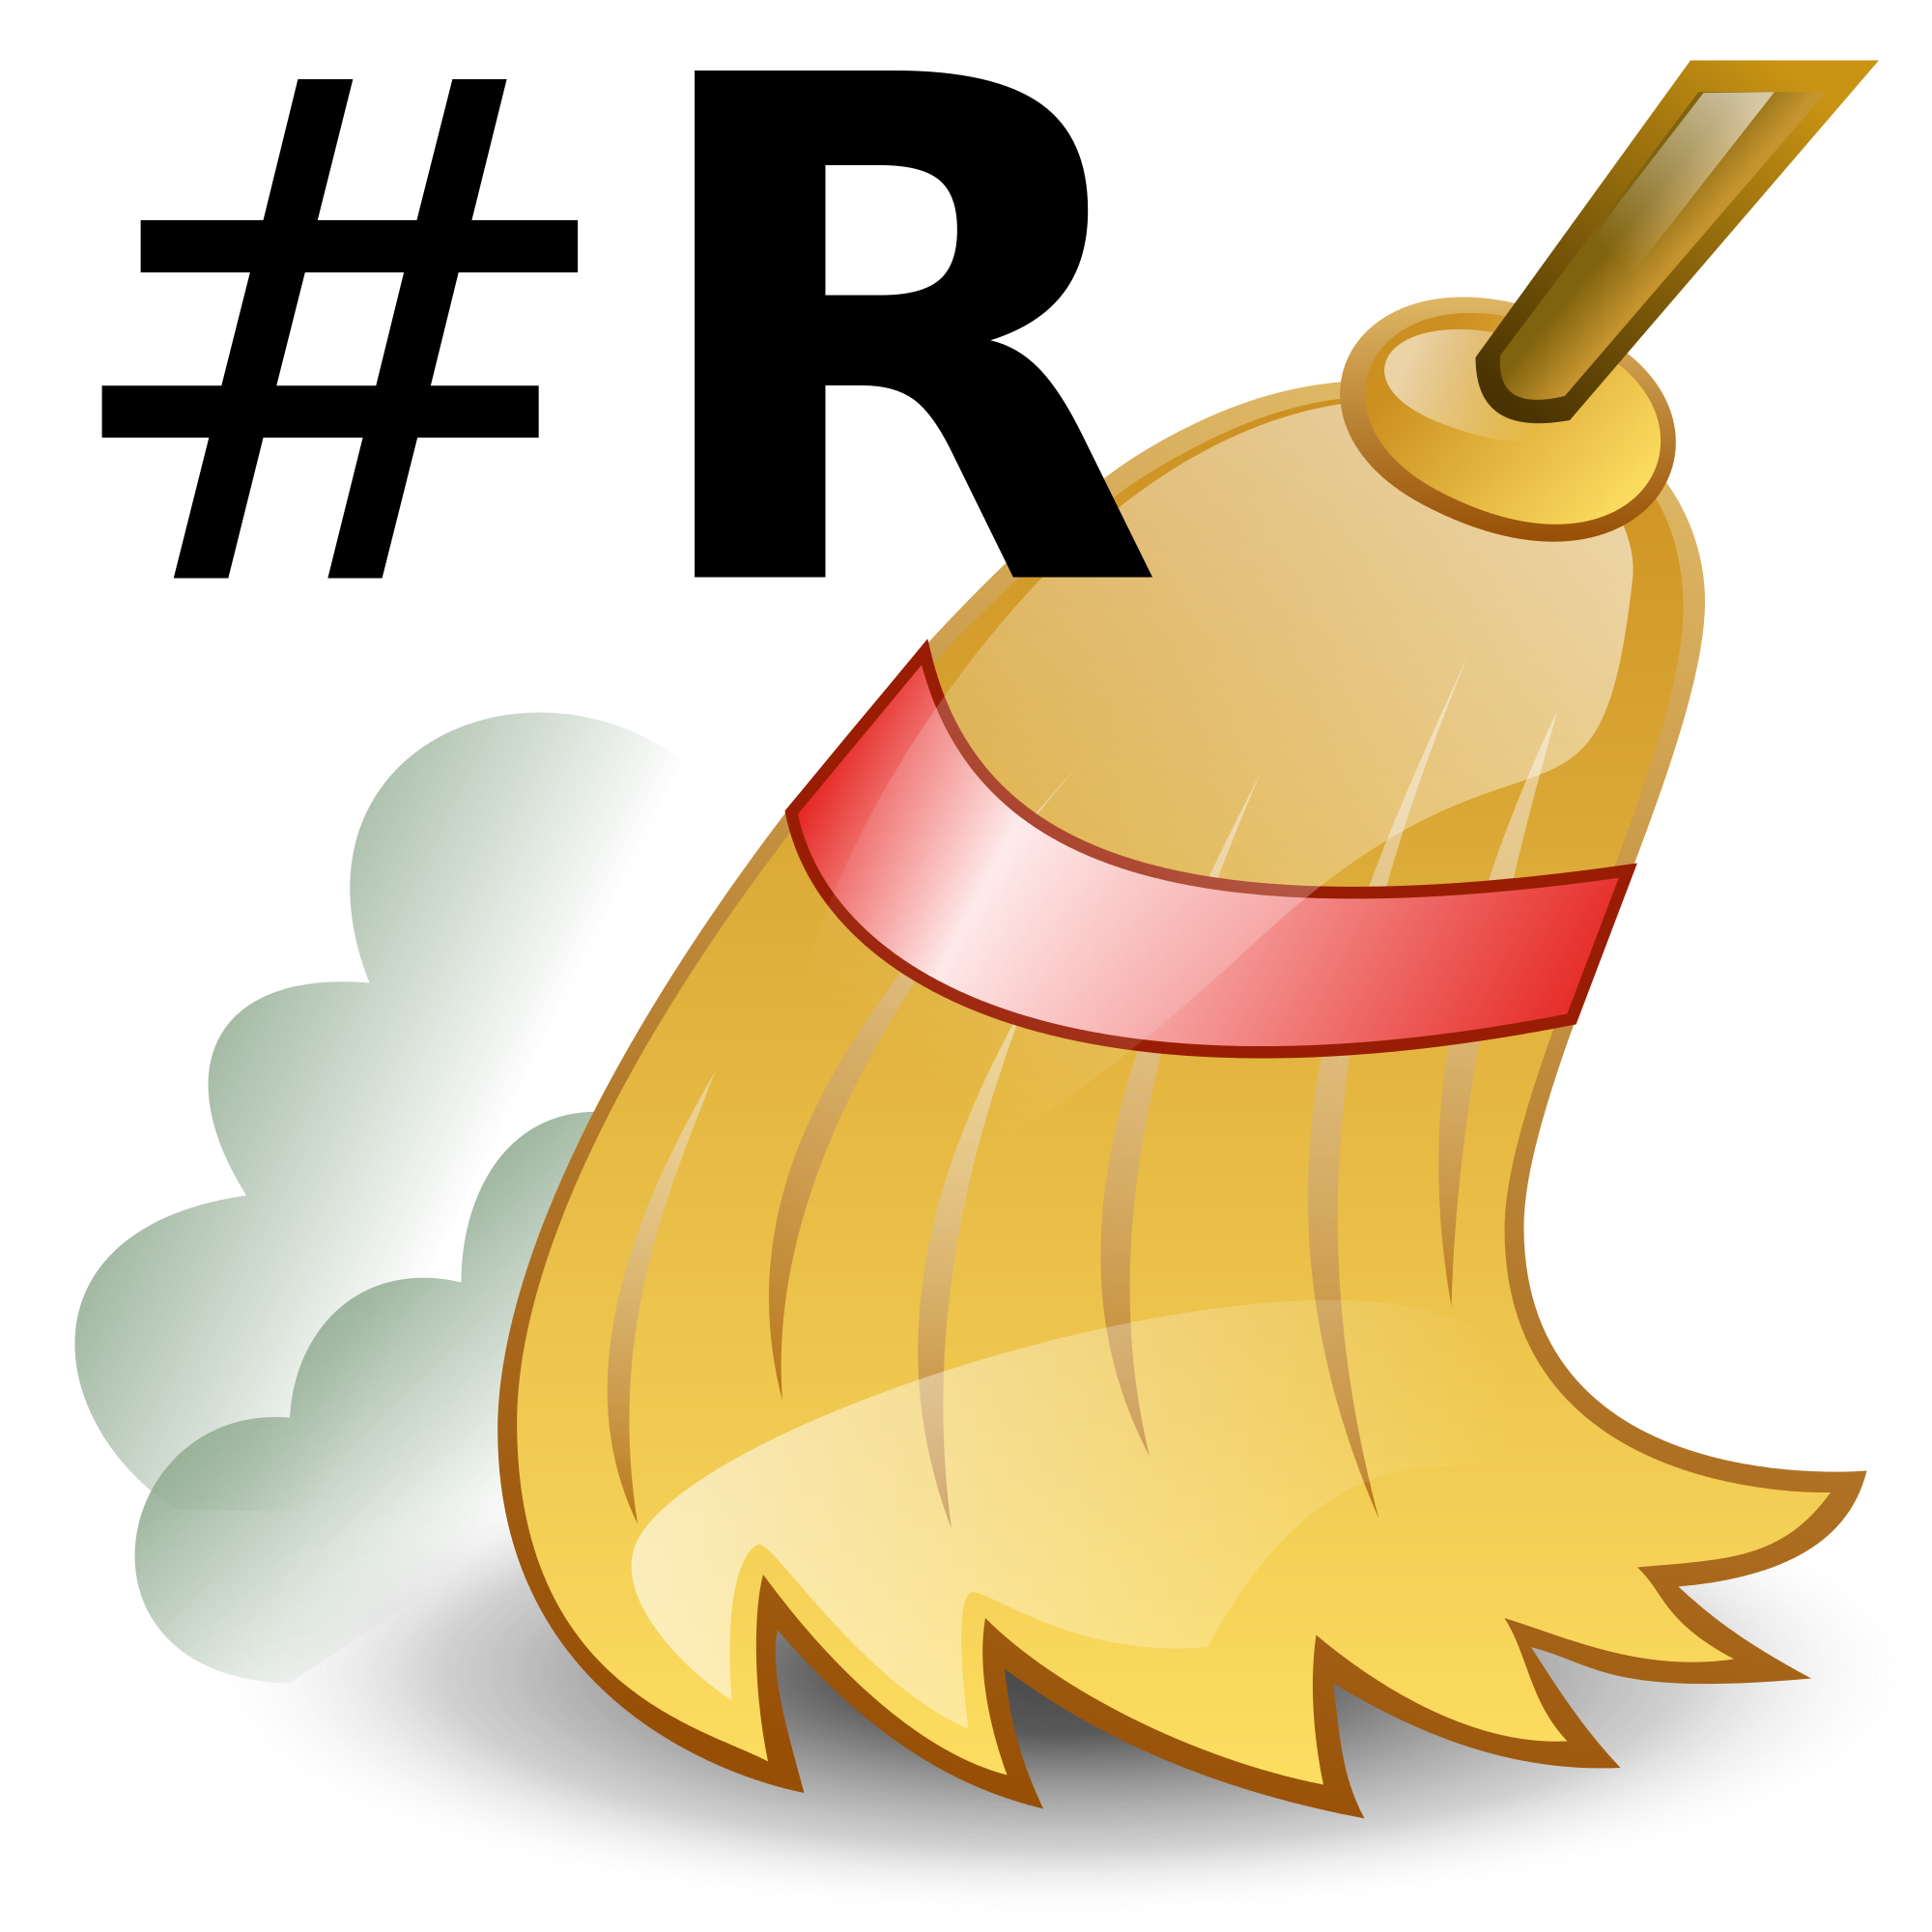 Dust clipart broom sweeping. File icon r svg